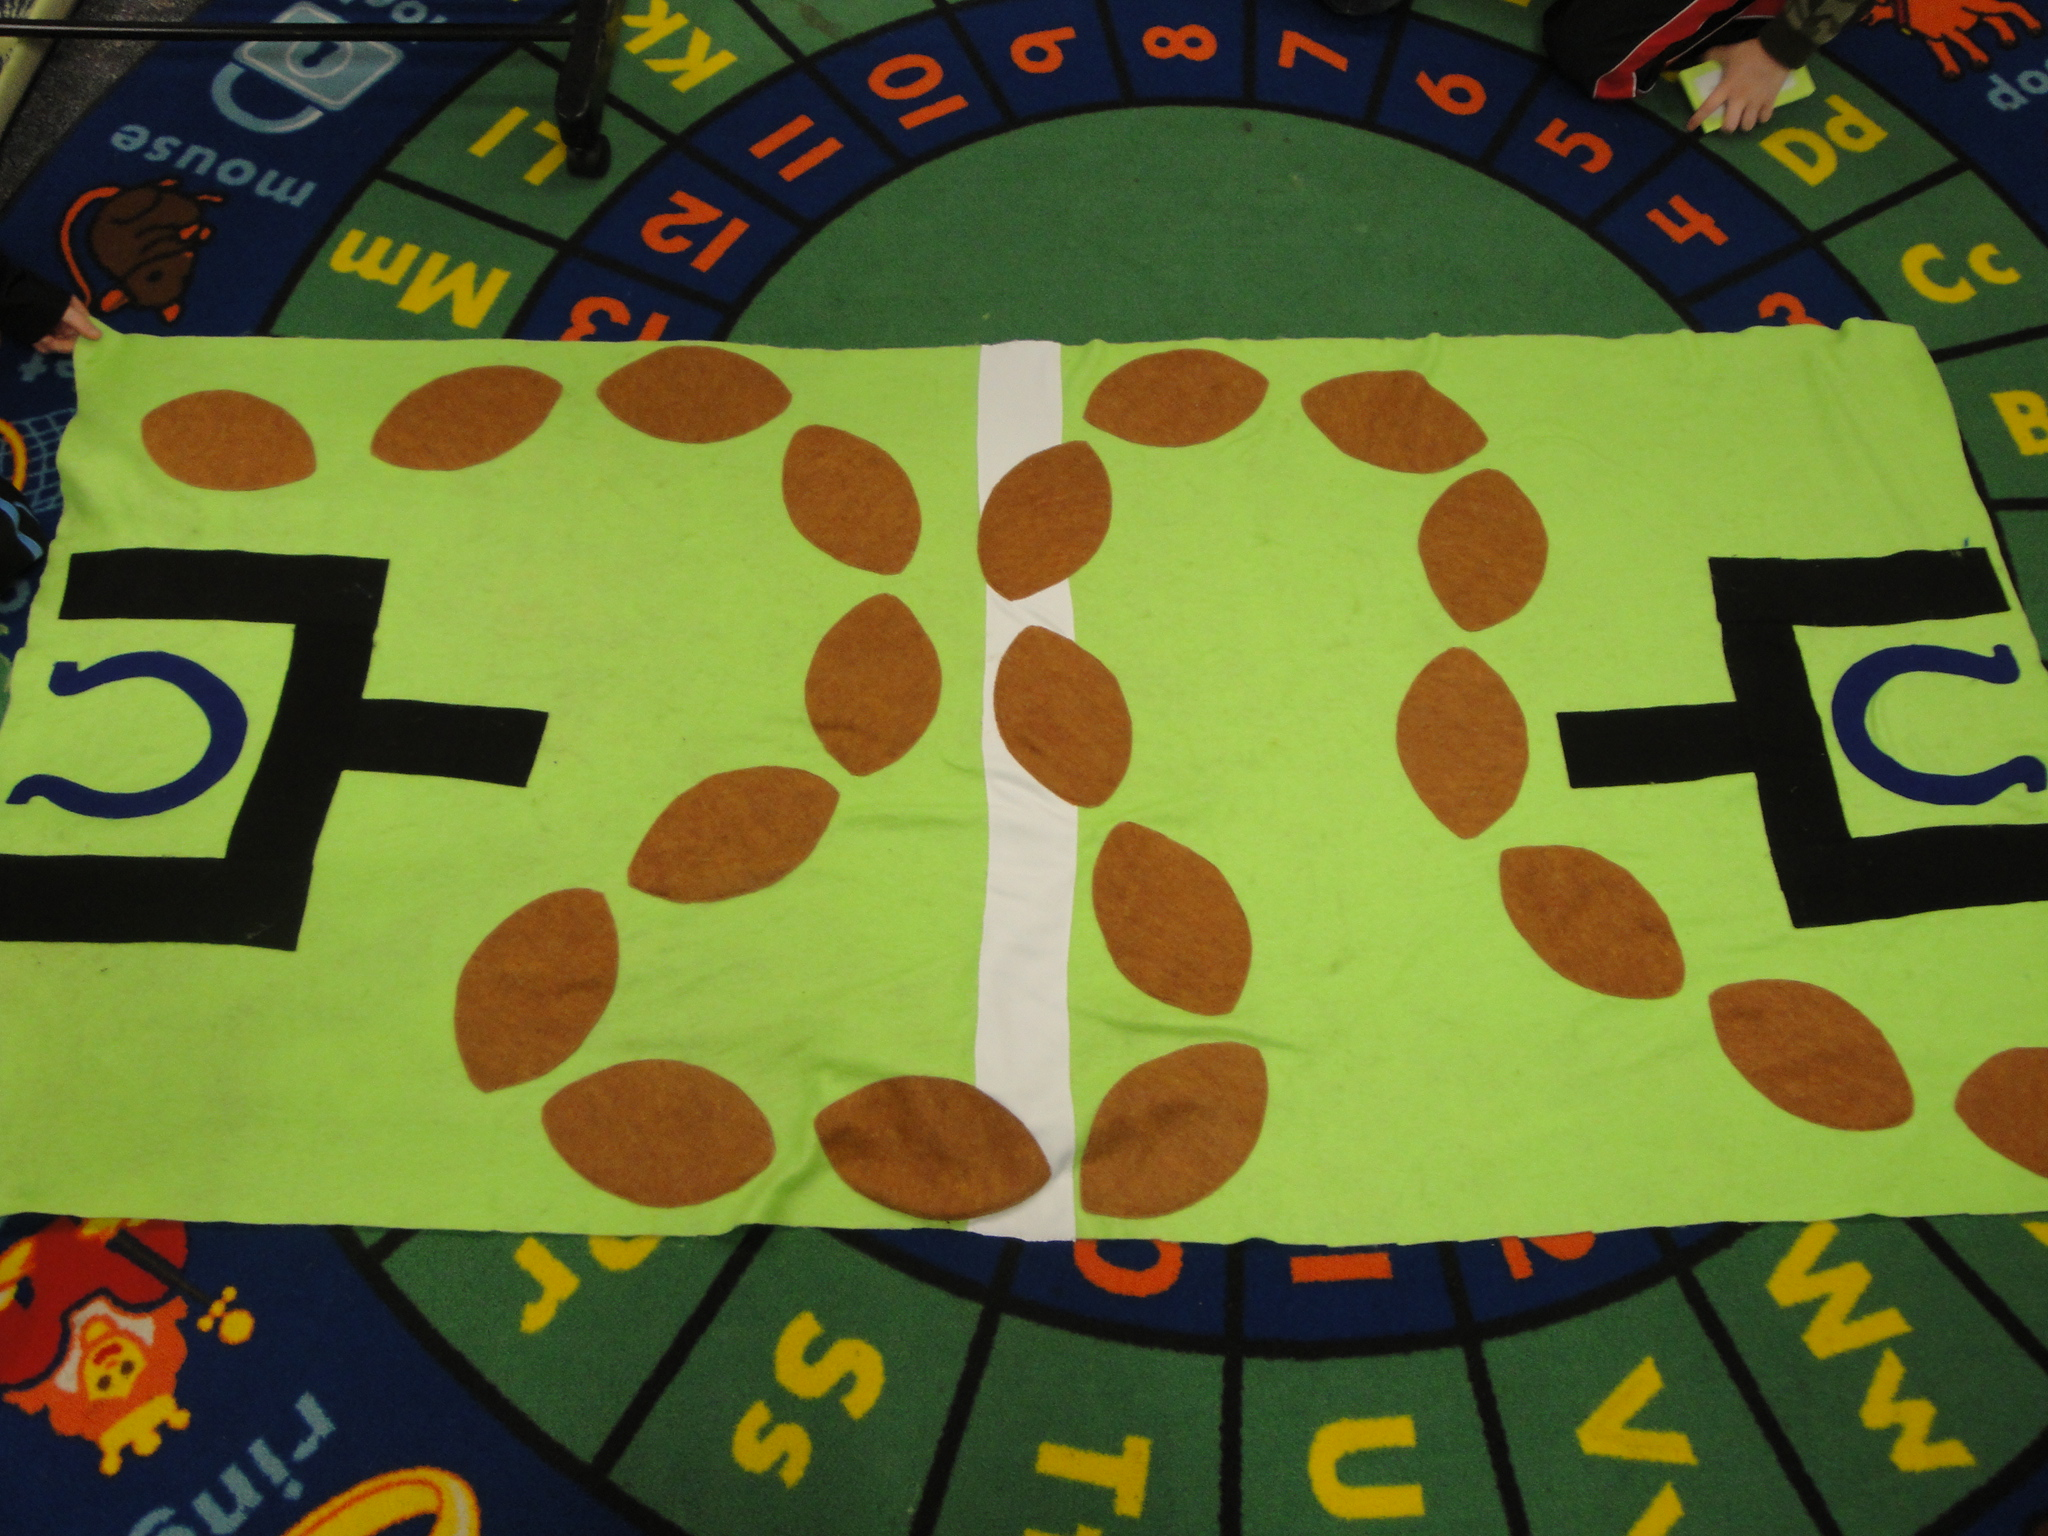 12 Gifts Of Christmas Giant Football Game Board A Project At A Time